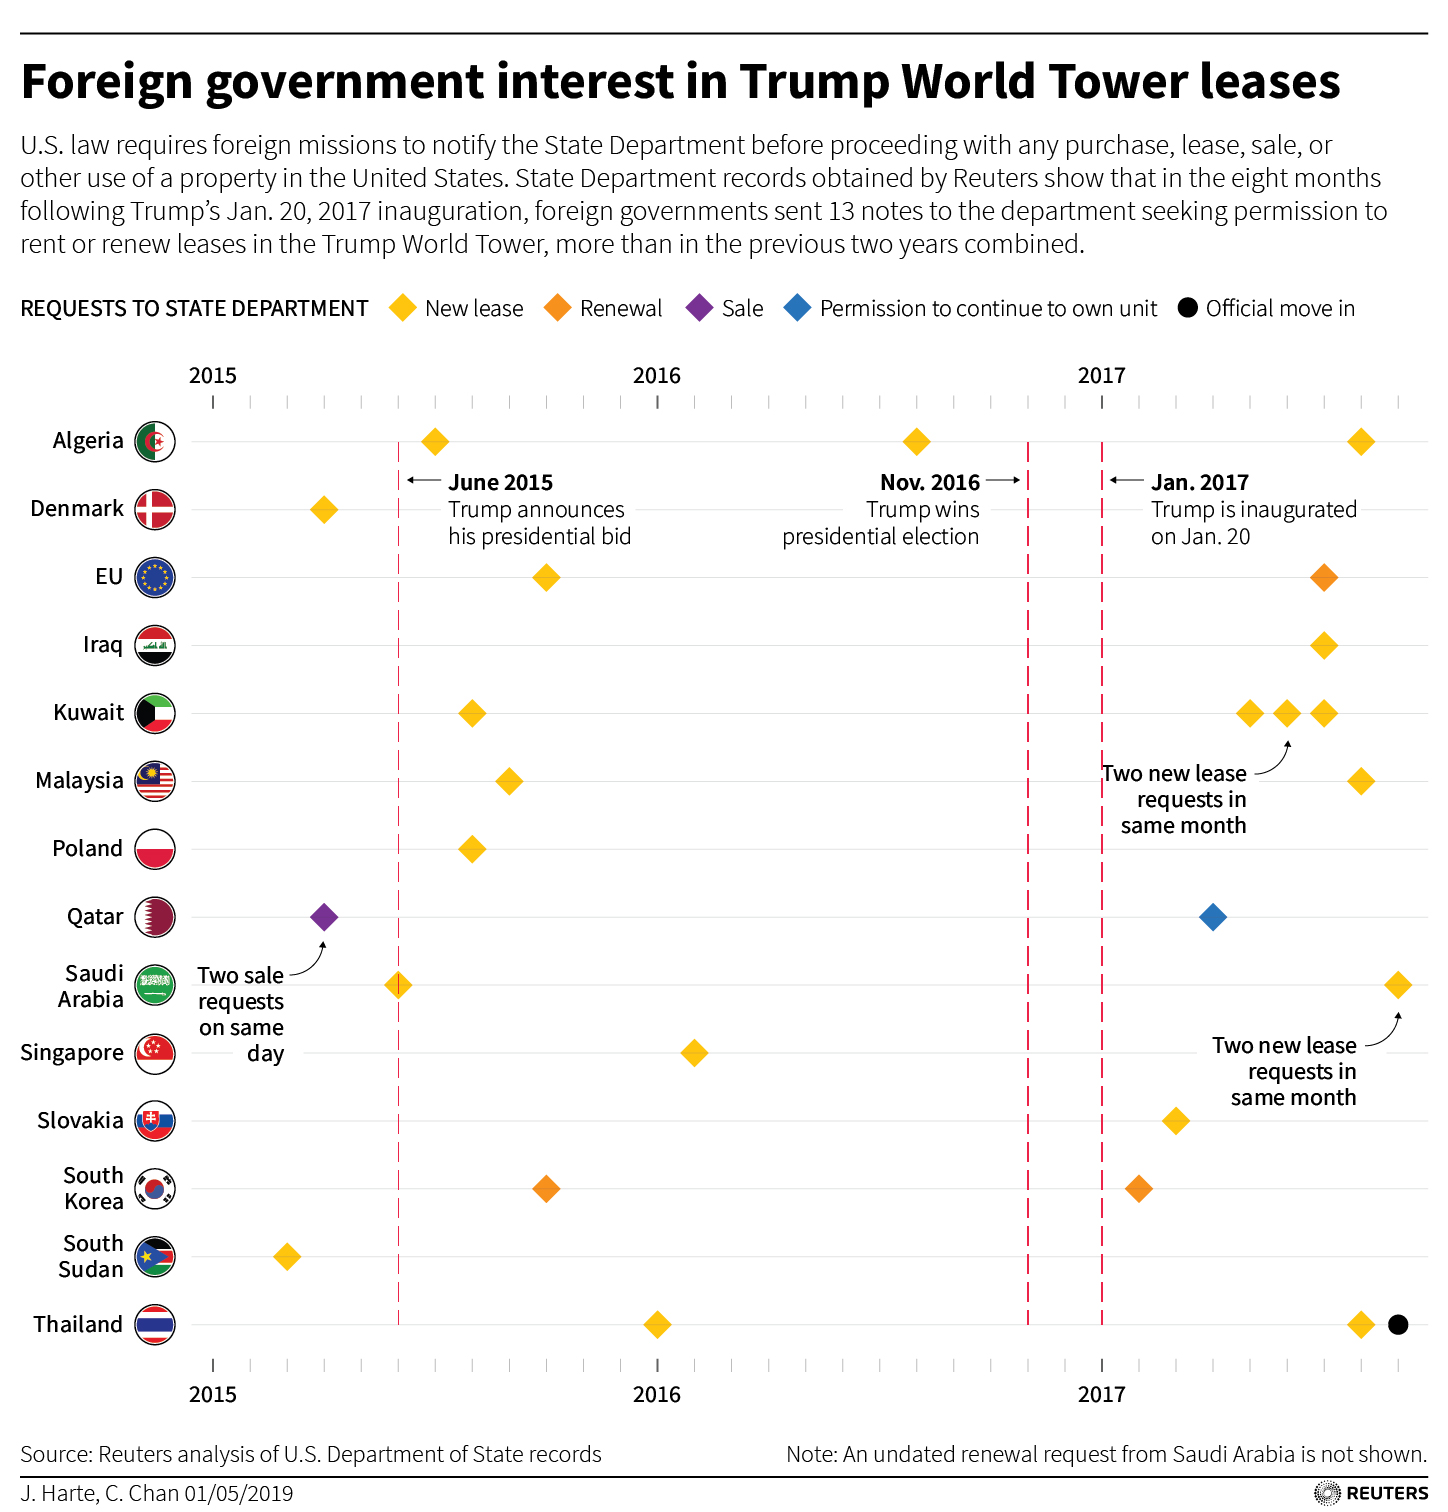 Tracking Corruption and Conflicts in the Trump